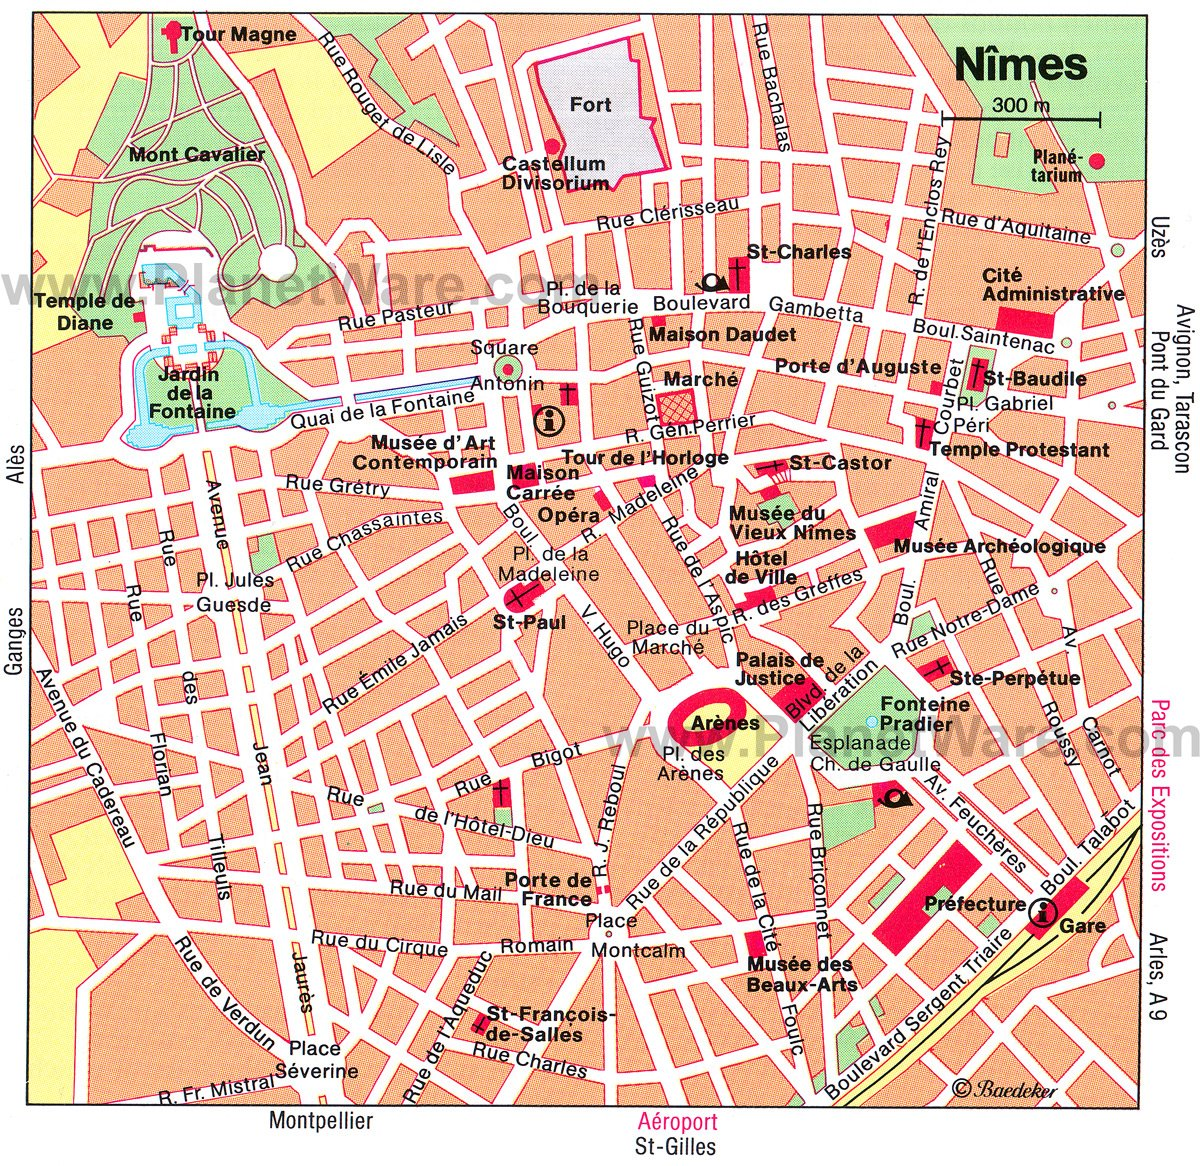 10 TopRated Tourist Attractions in Nimes – Tourist Attractions In Paris Map